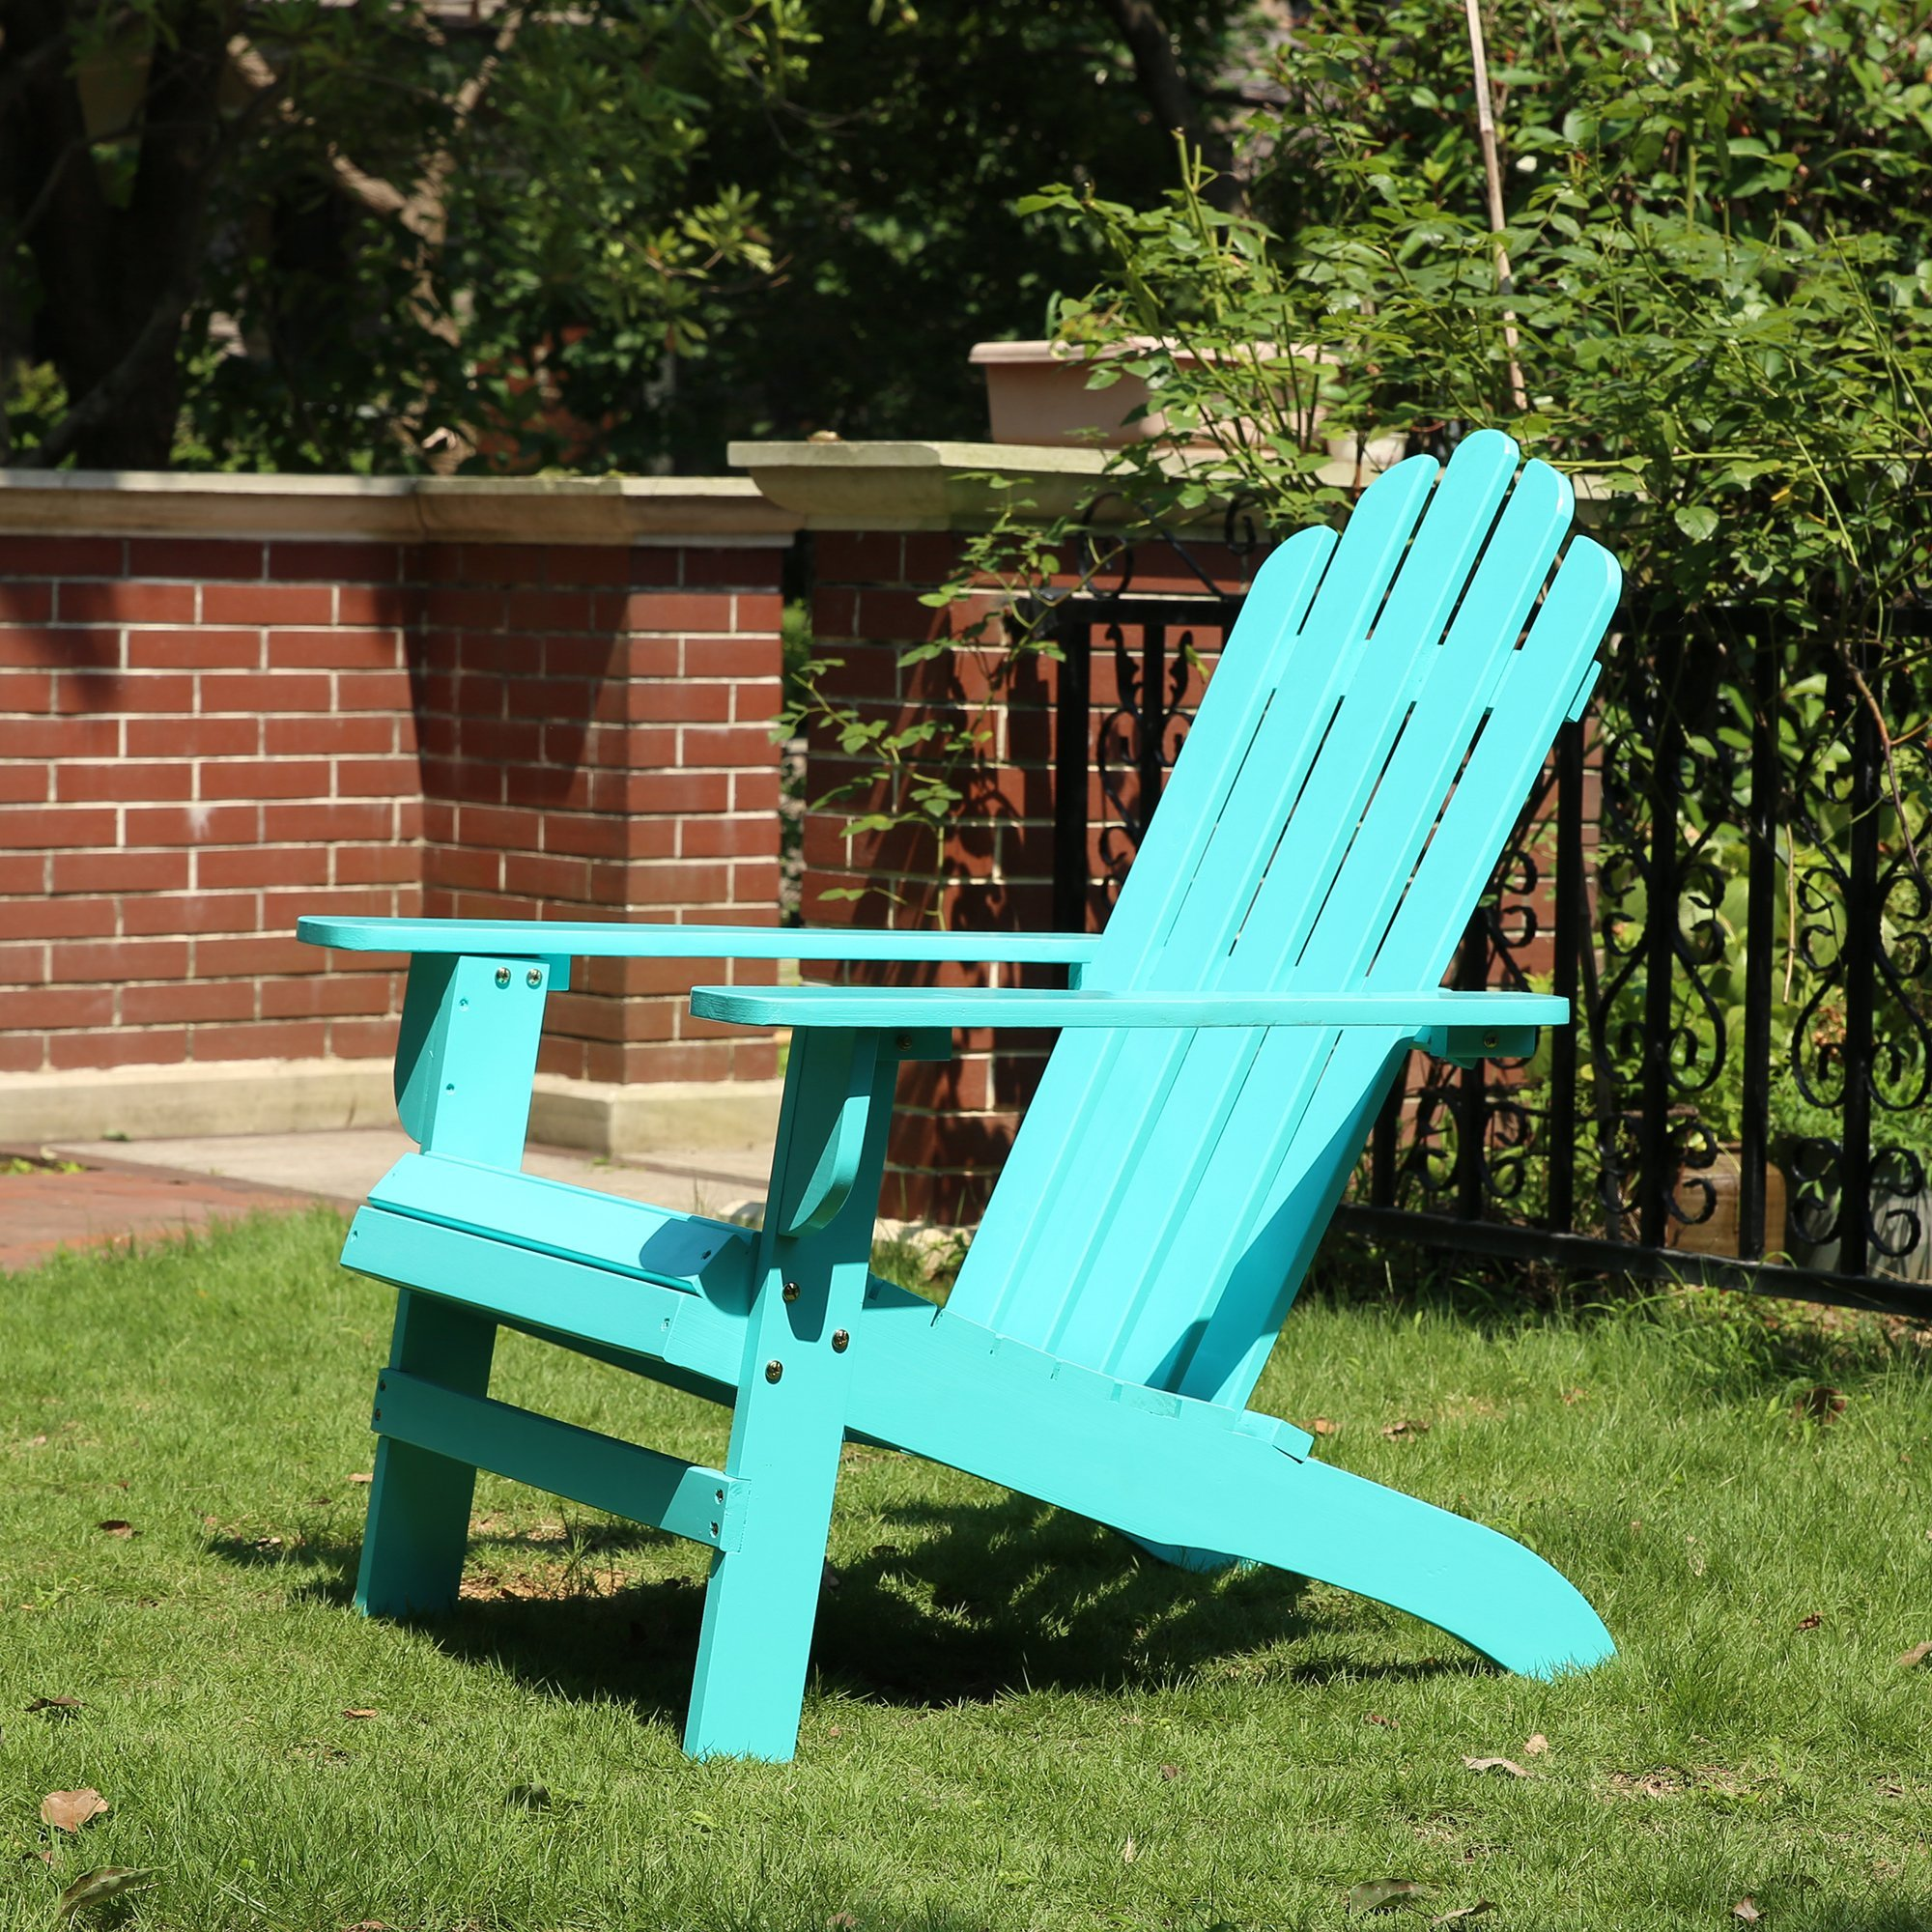 Azbro Outdoor Wooden Fashion Adirondack chair/Muskoka Chairs Patio Deck Garden Furniture,Turquoise by Azbro (Image #4)